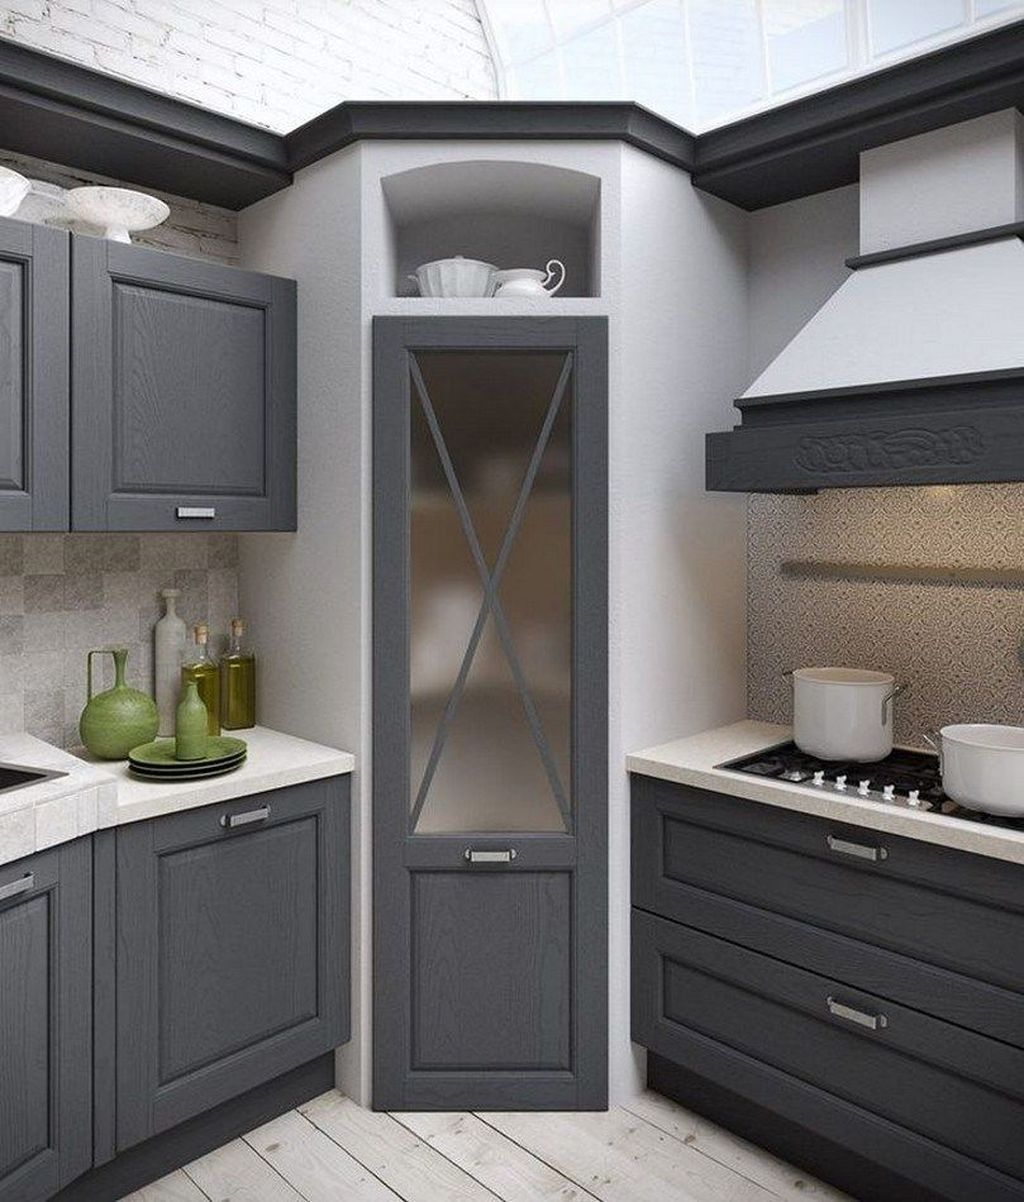 Small Kitchen Pantry: 39 Astonishing Small Kitchen Design Ideas That Remodel